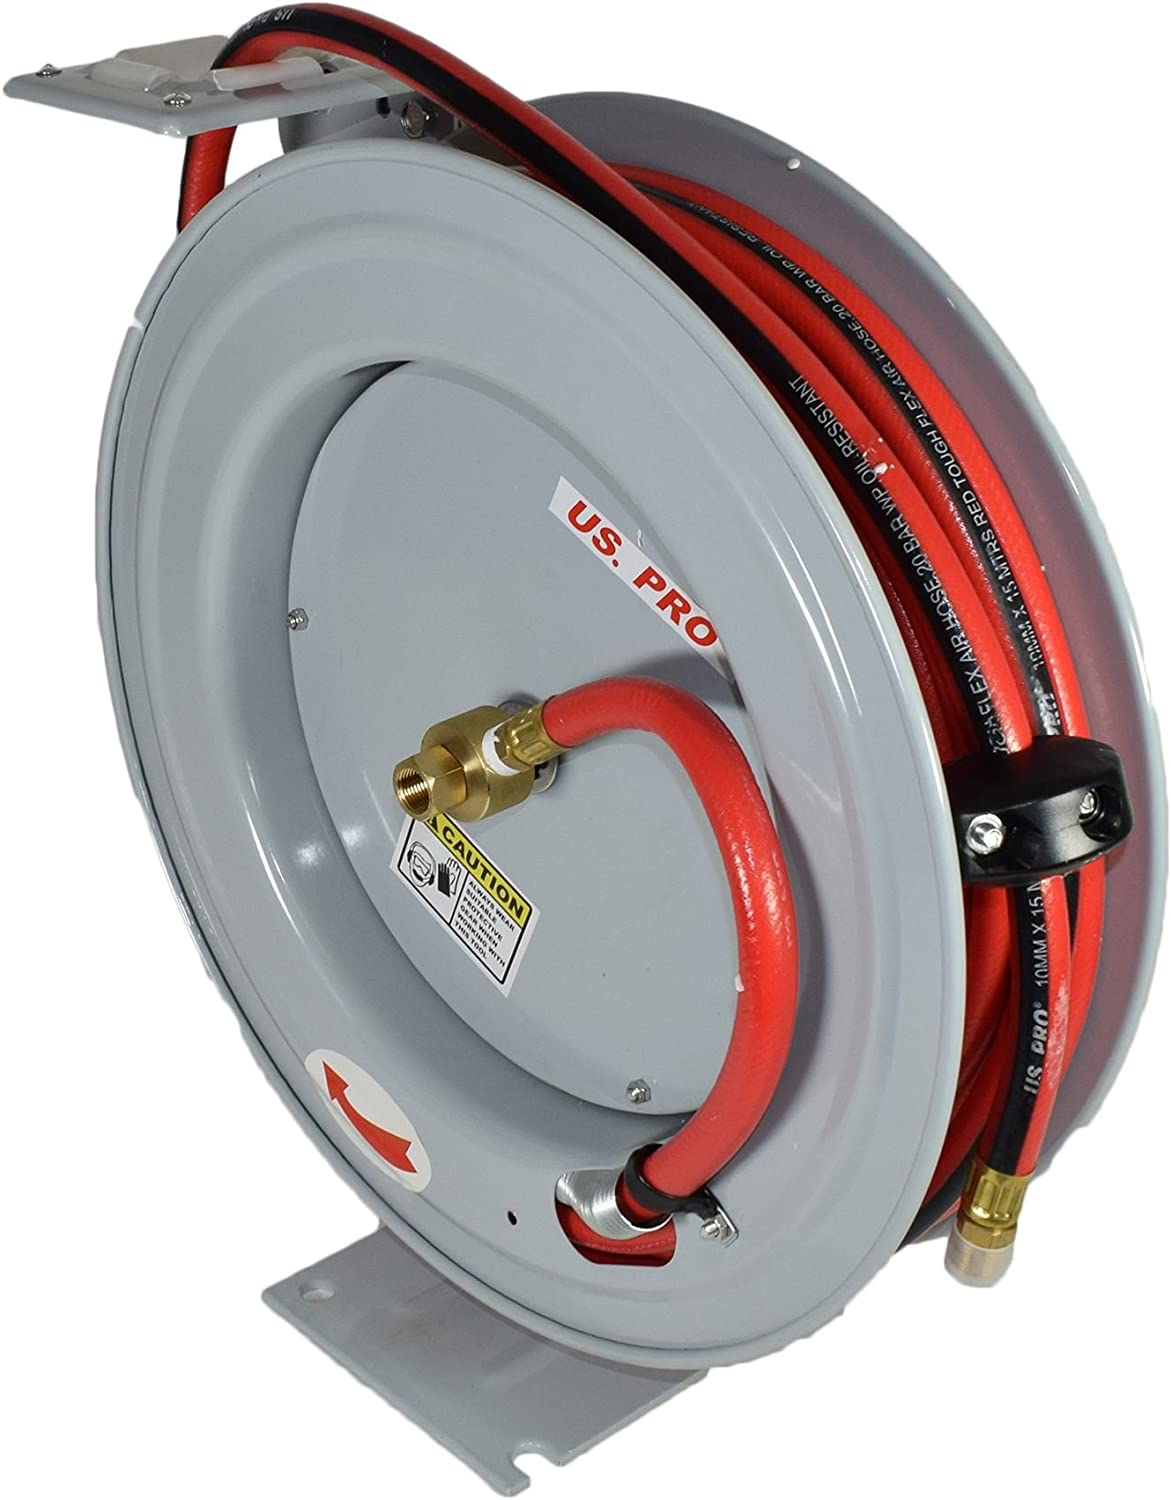 Retractable 50ft Air hose on Reel 1//2 BSP Spring Rewind Wall Mountable BSP AT455